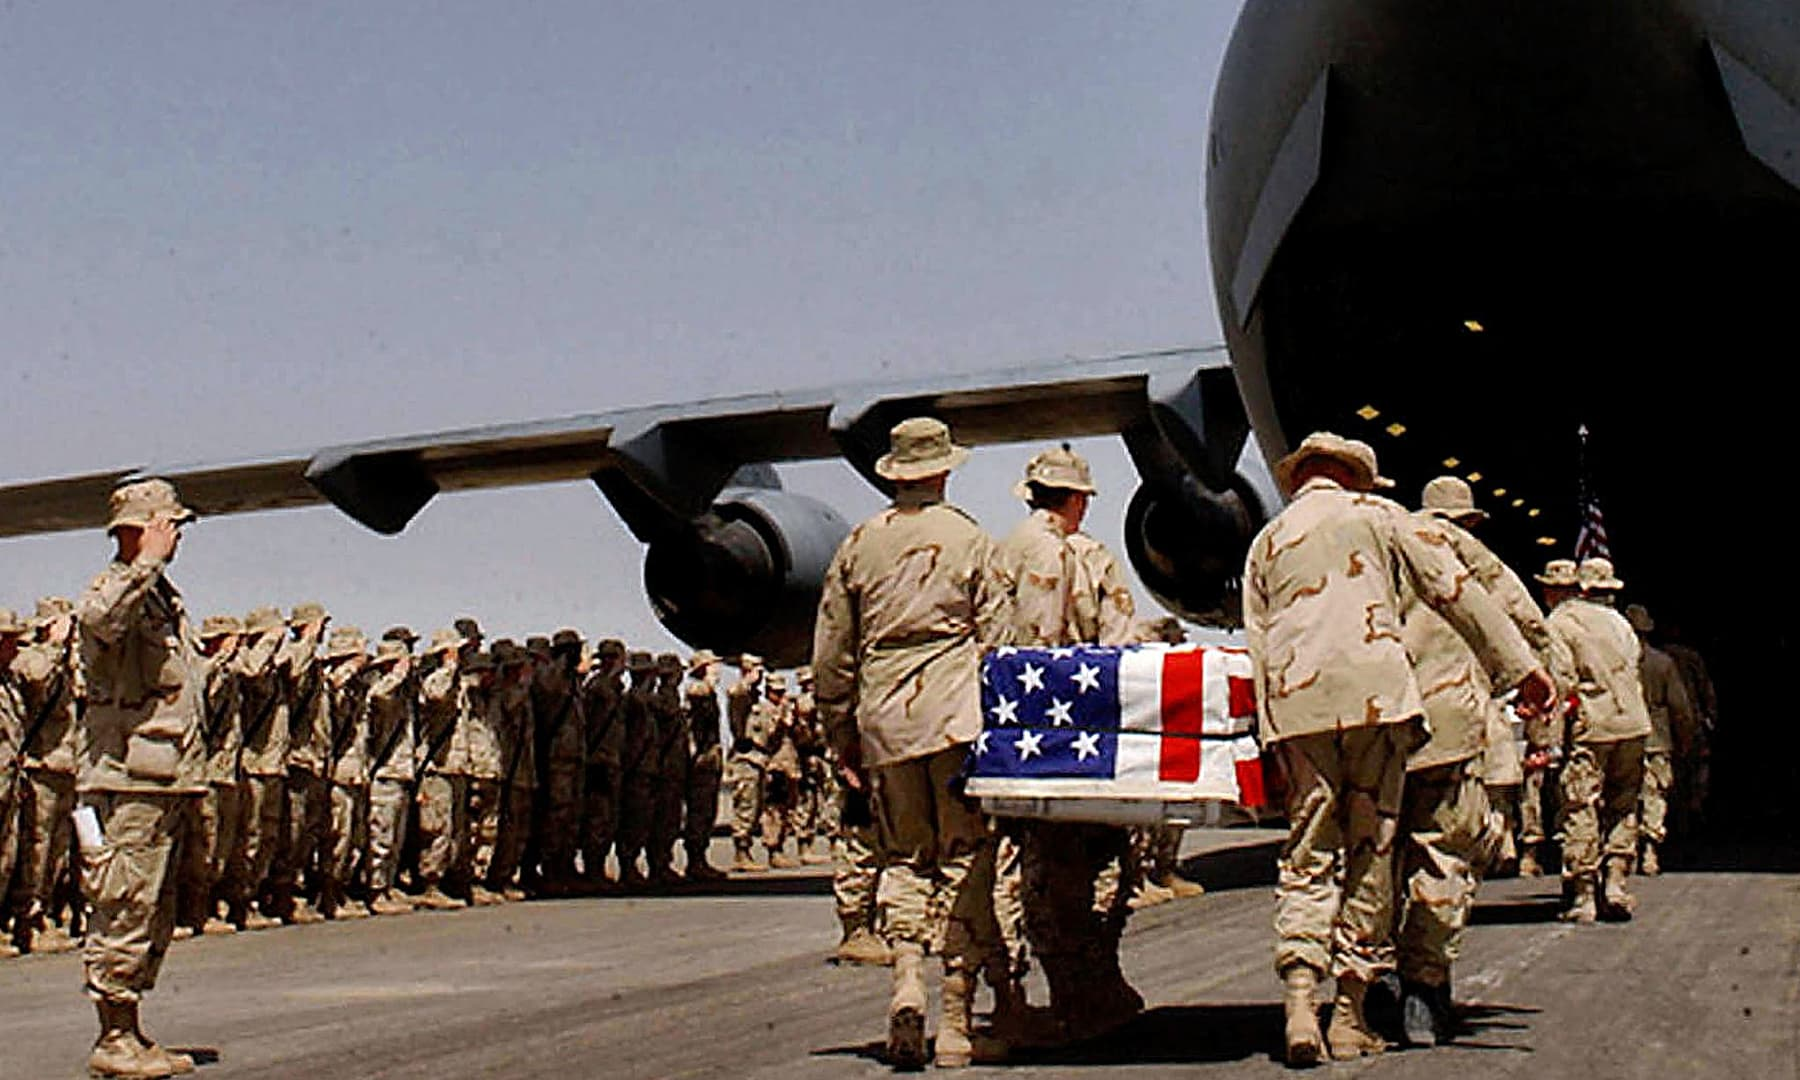 In this file photo taken on March 30, 2003, US soldiers carry the coffins of their colleagues draped in national flags to a C-17 aircraft during a memorial ceremony held at Kandahar army base. — AFP